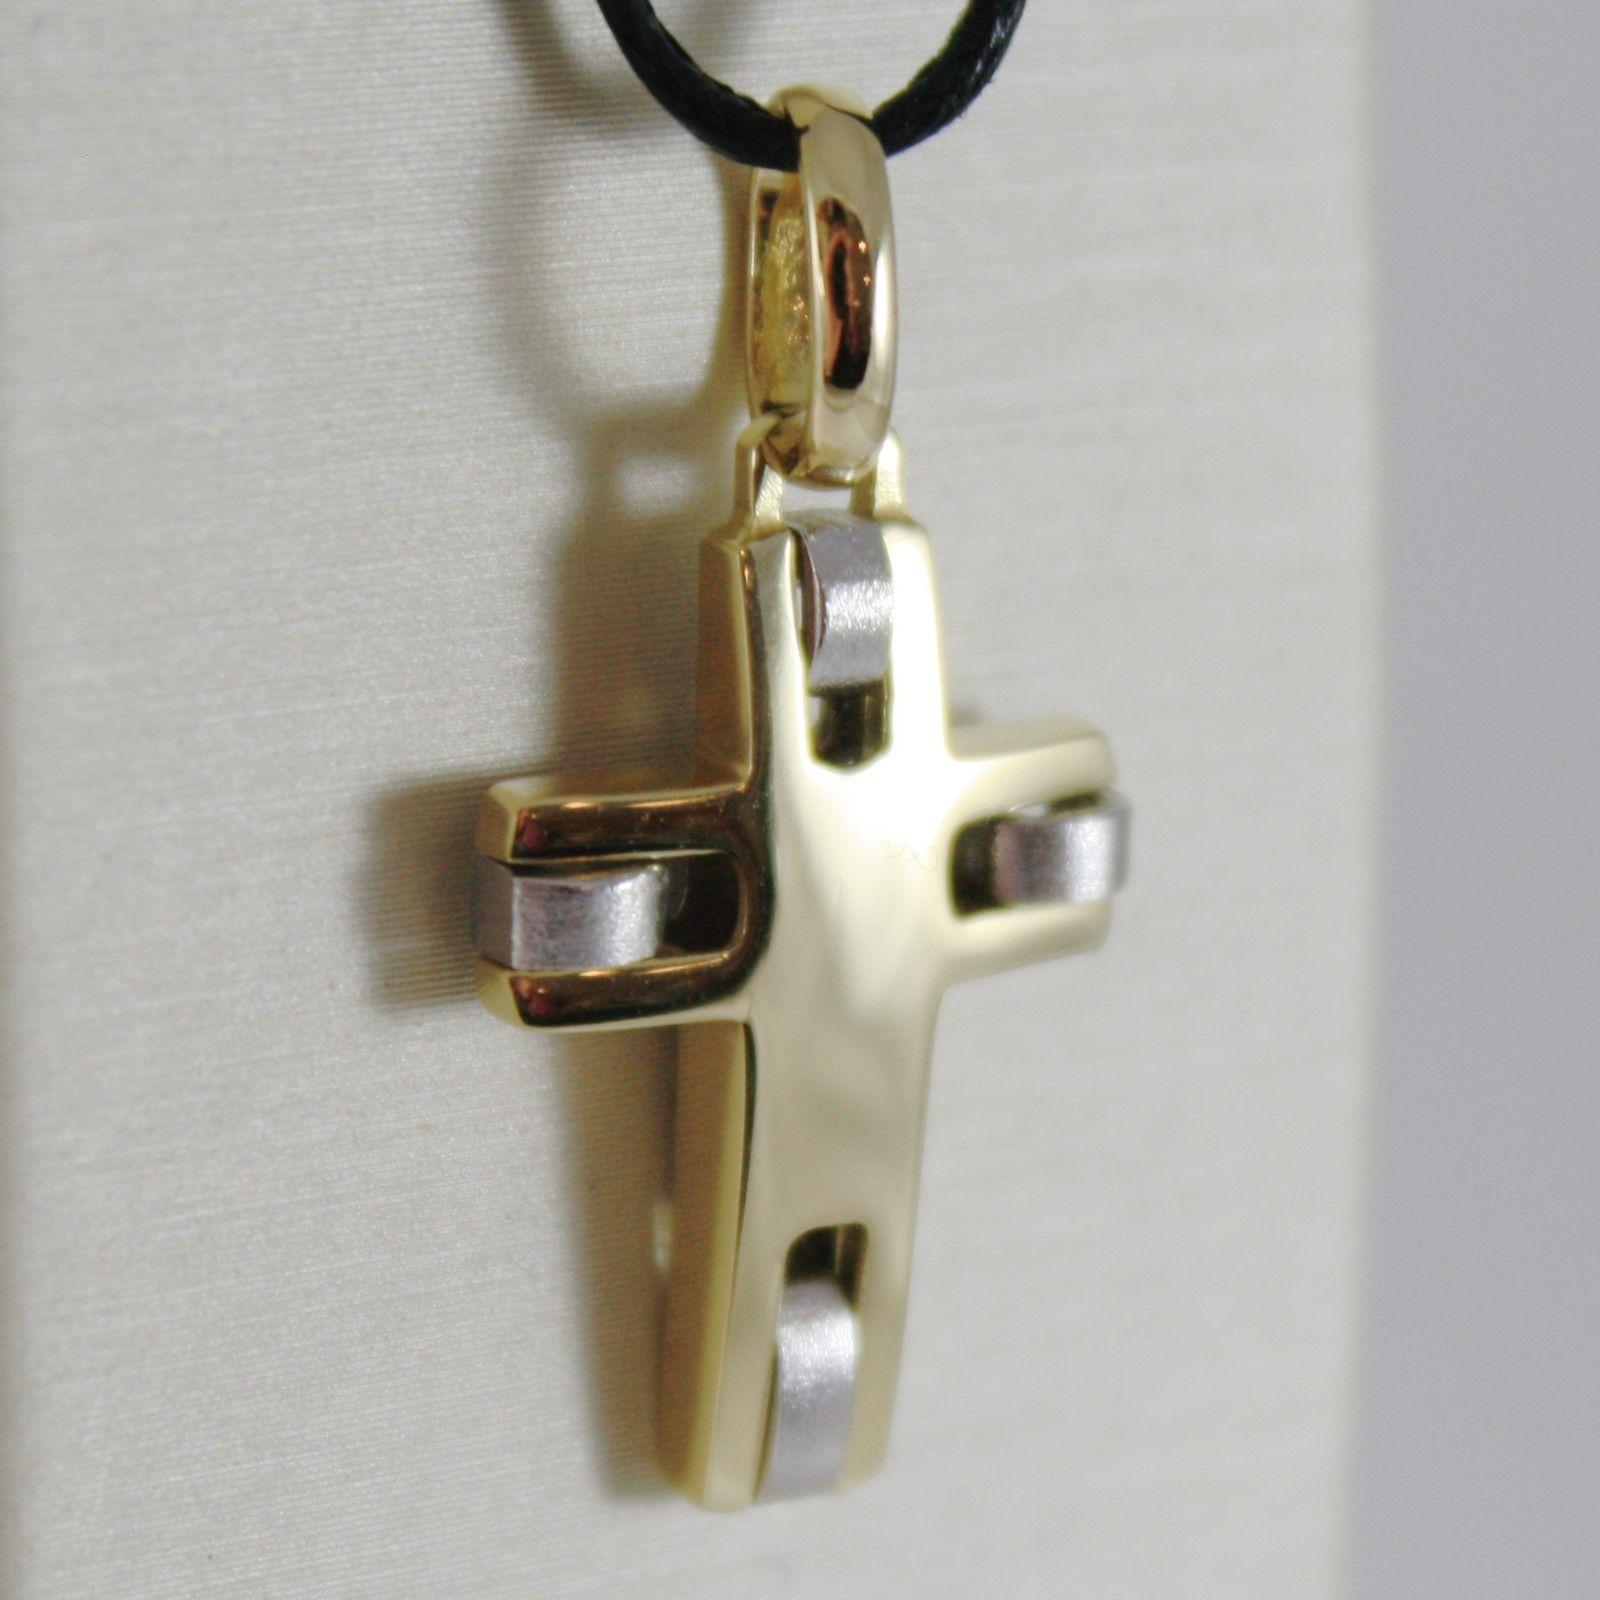 18K YELLOW WHITE GOLD CROSS SQUARED STYLIZED FINELY SATIN 1.14 IN MADE IN ITALY